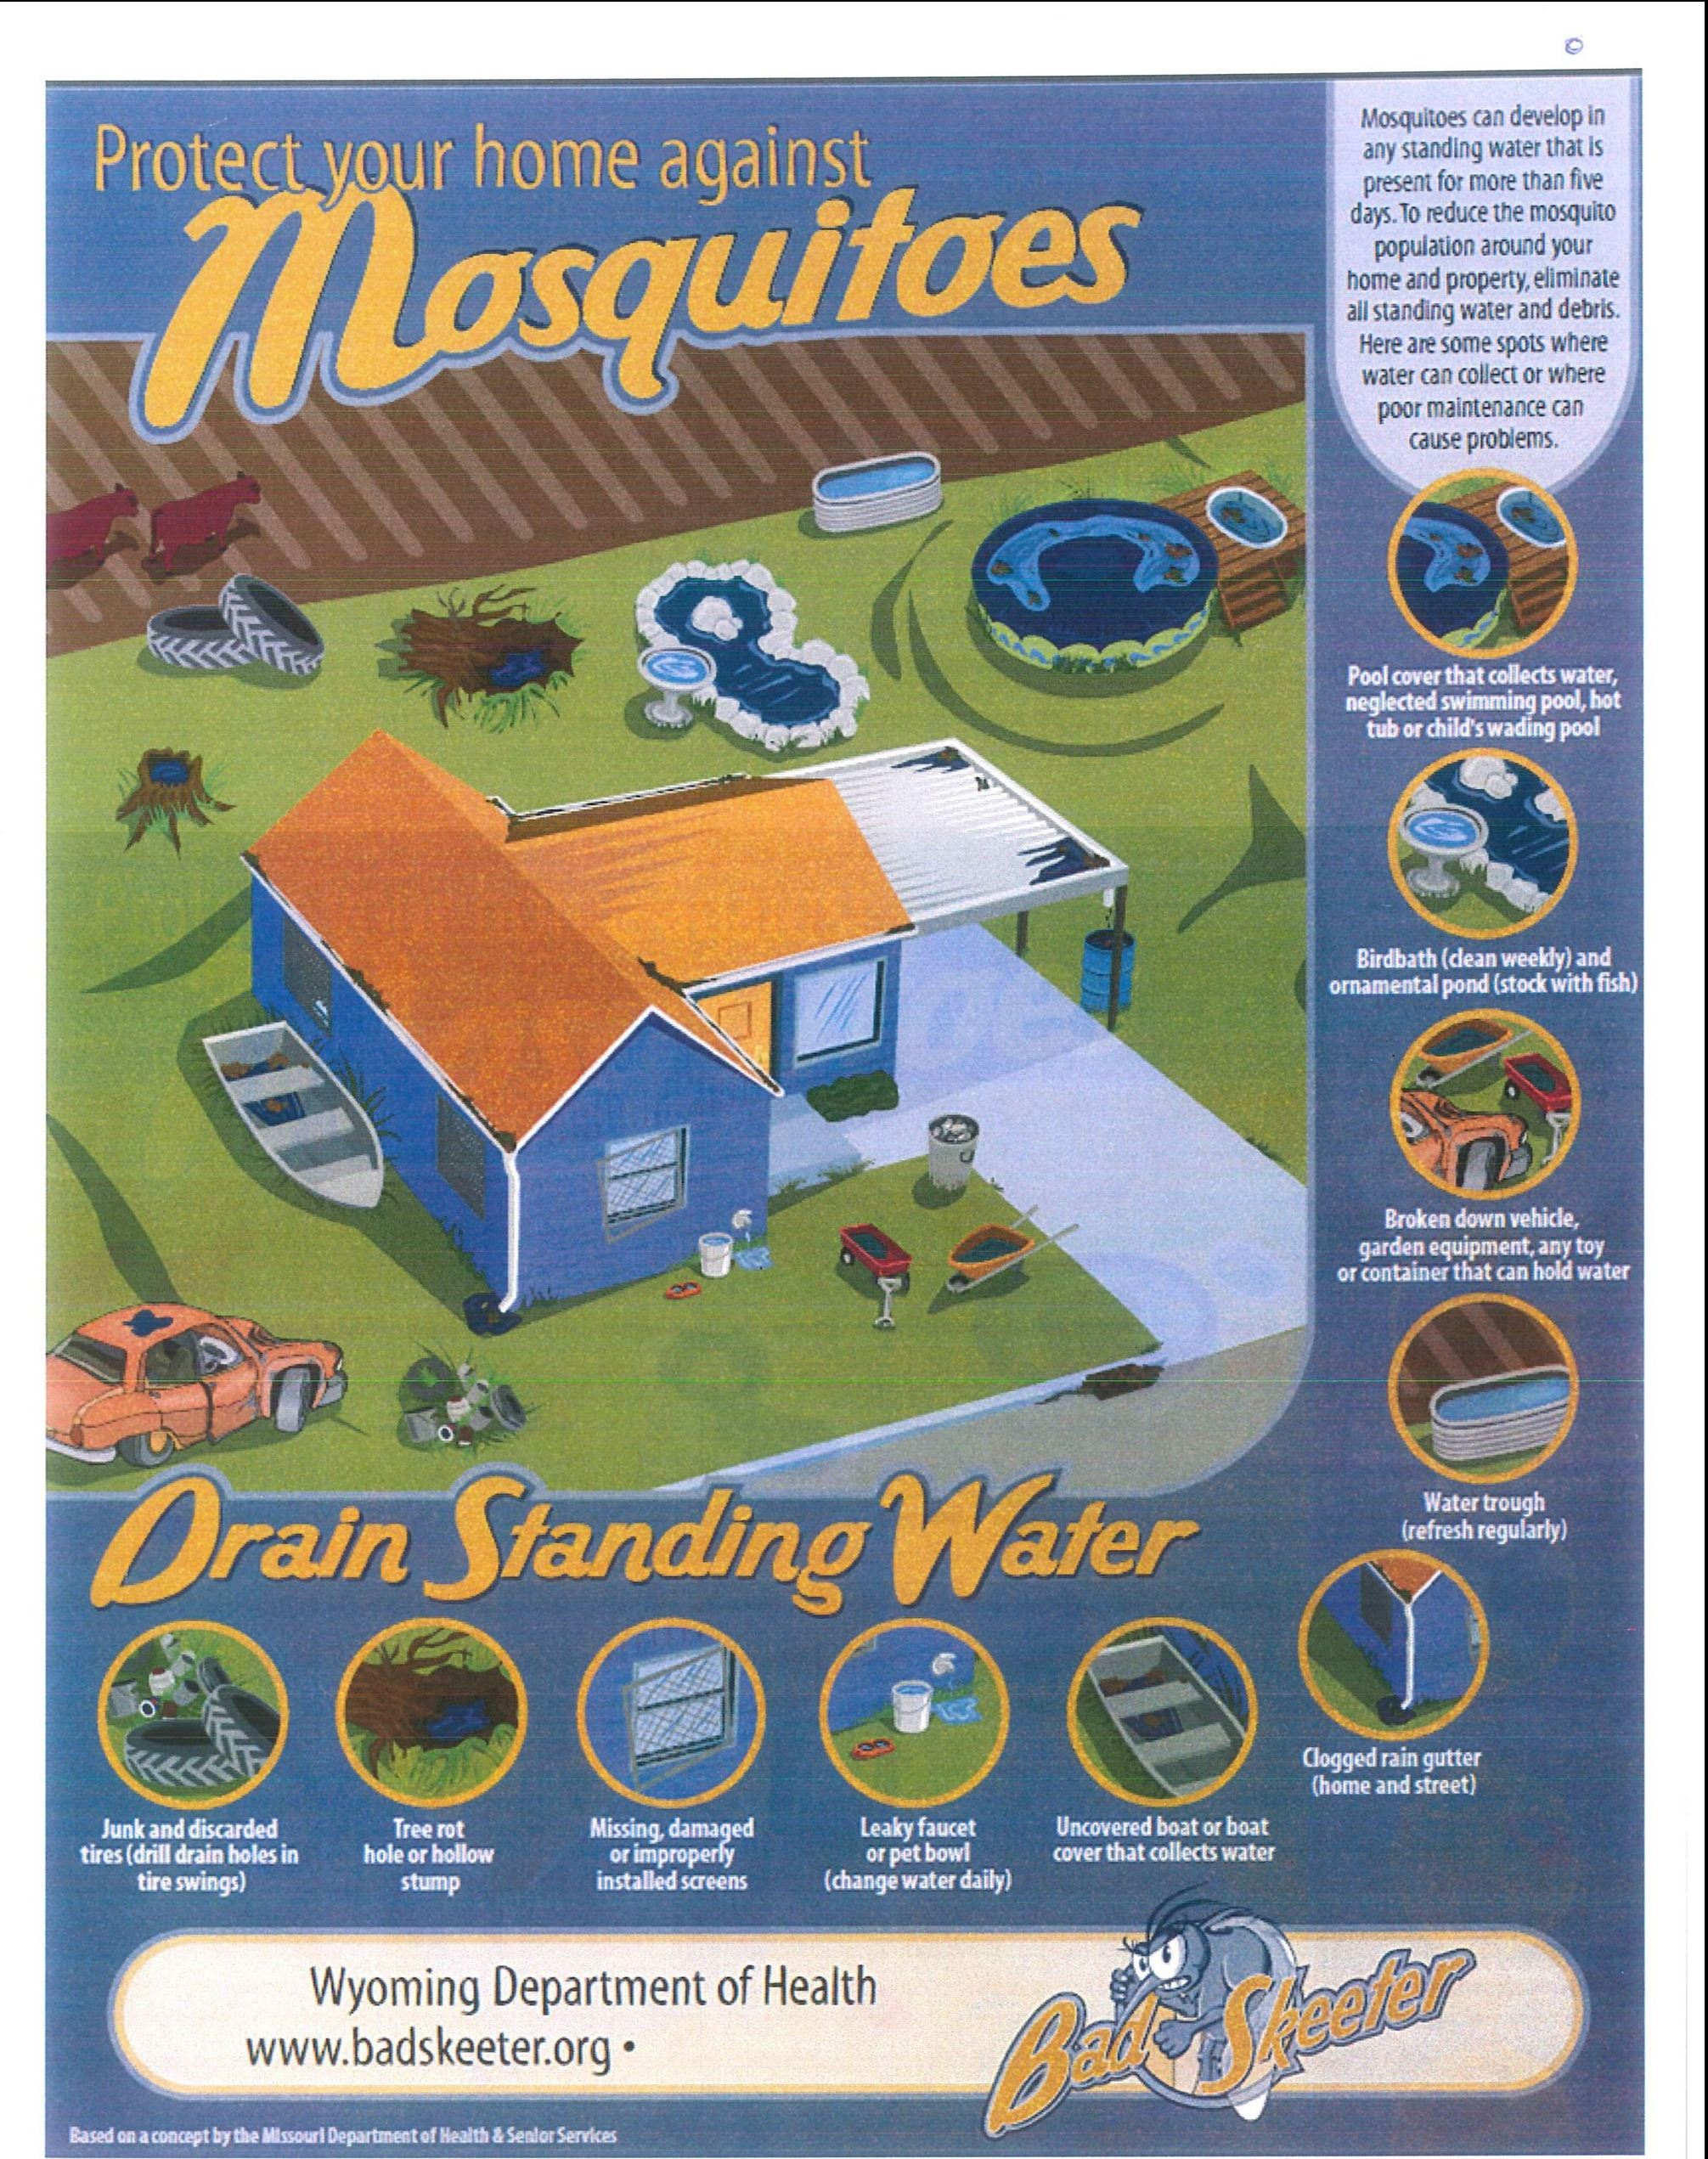 Mosquito Awareness Flyer